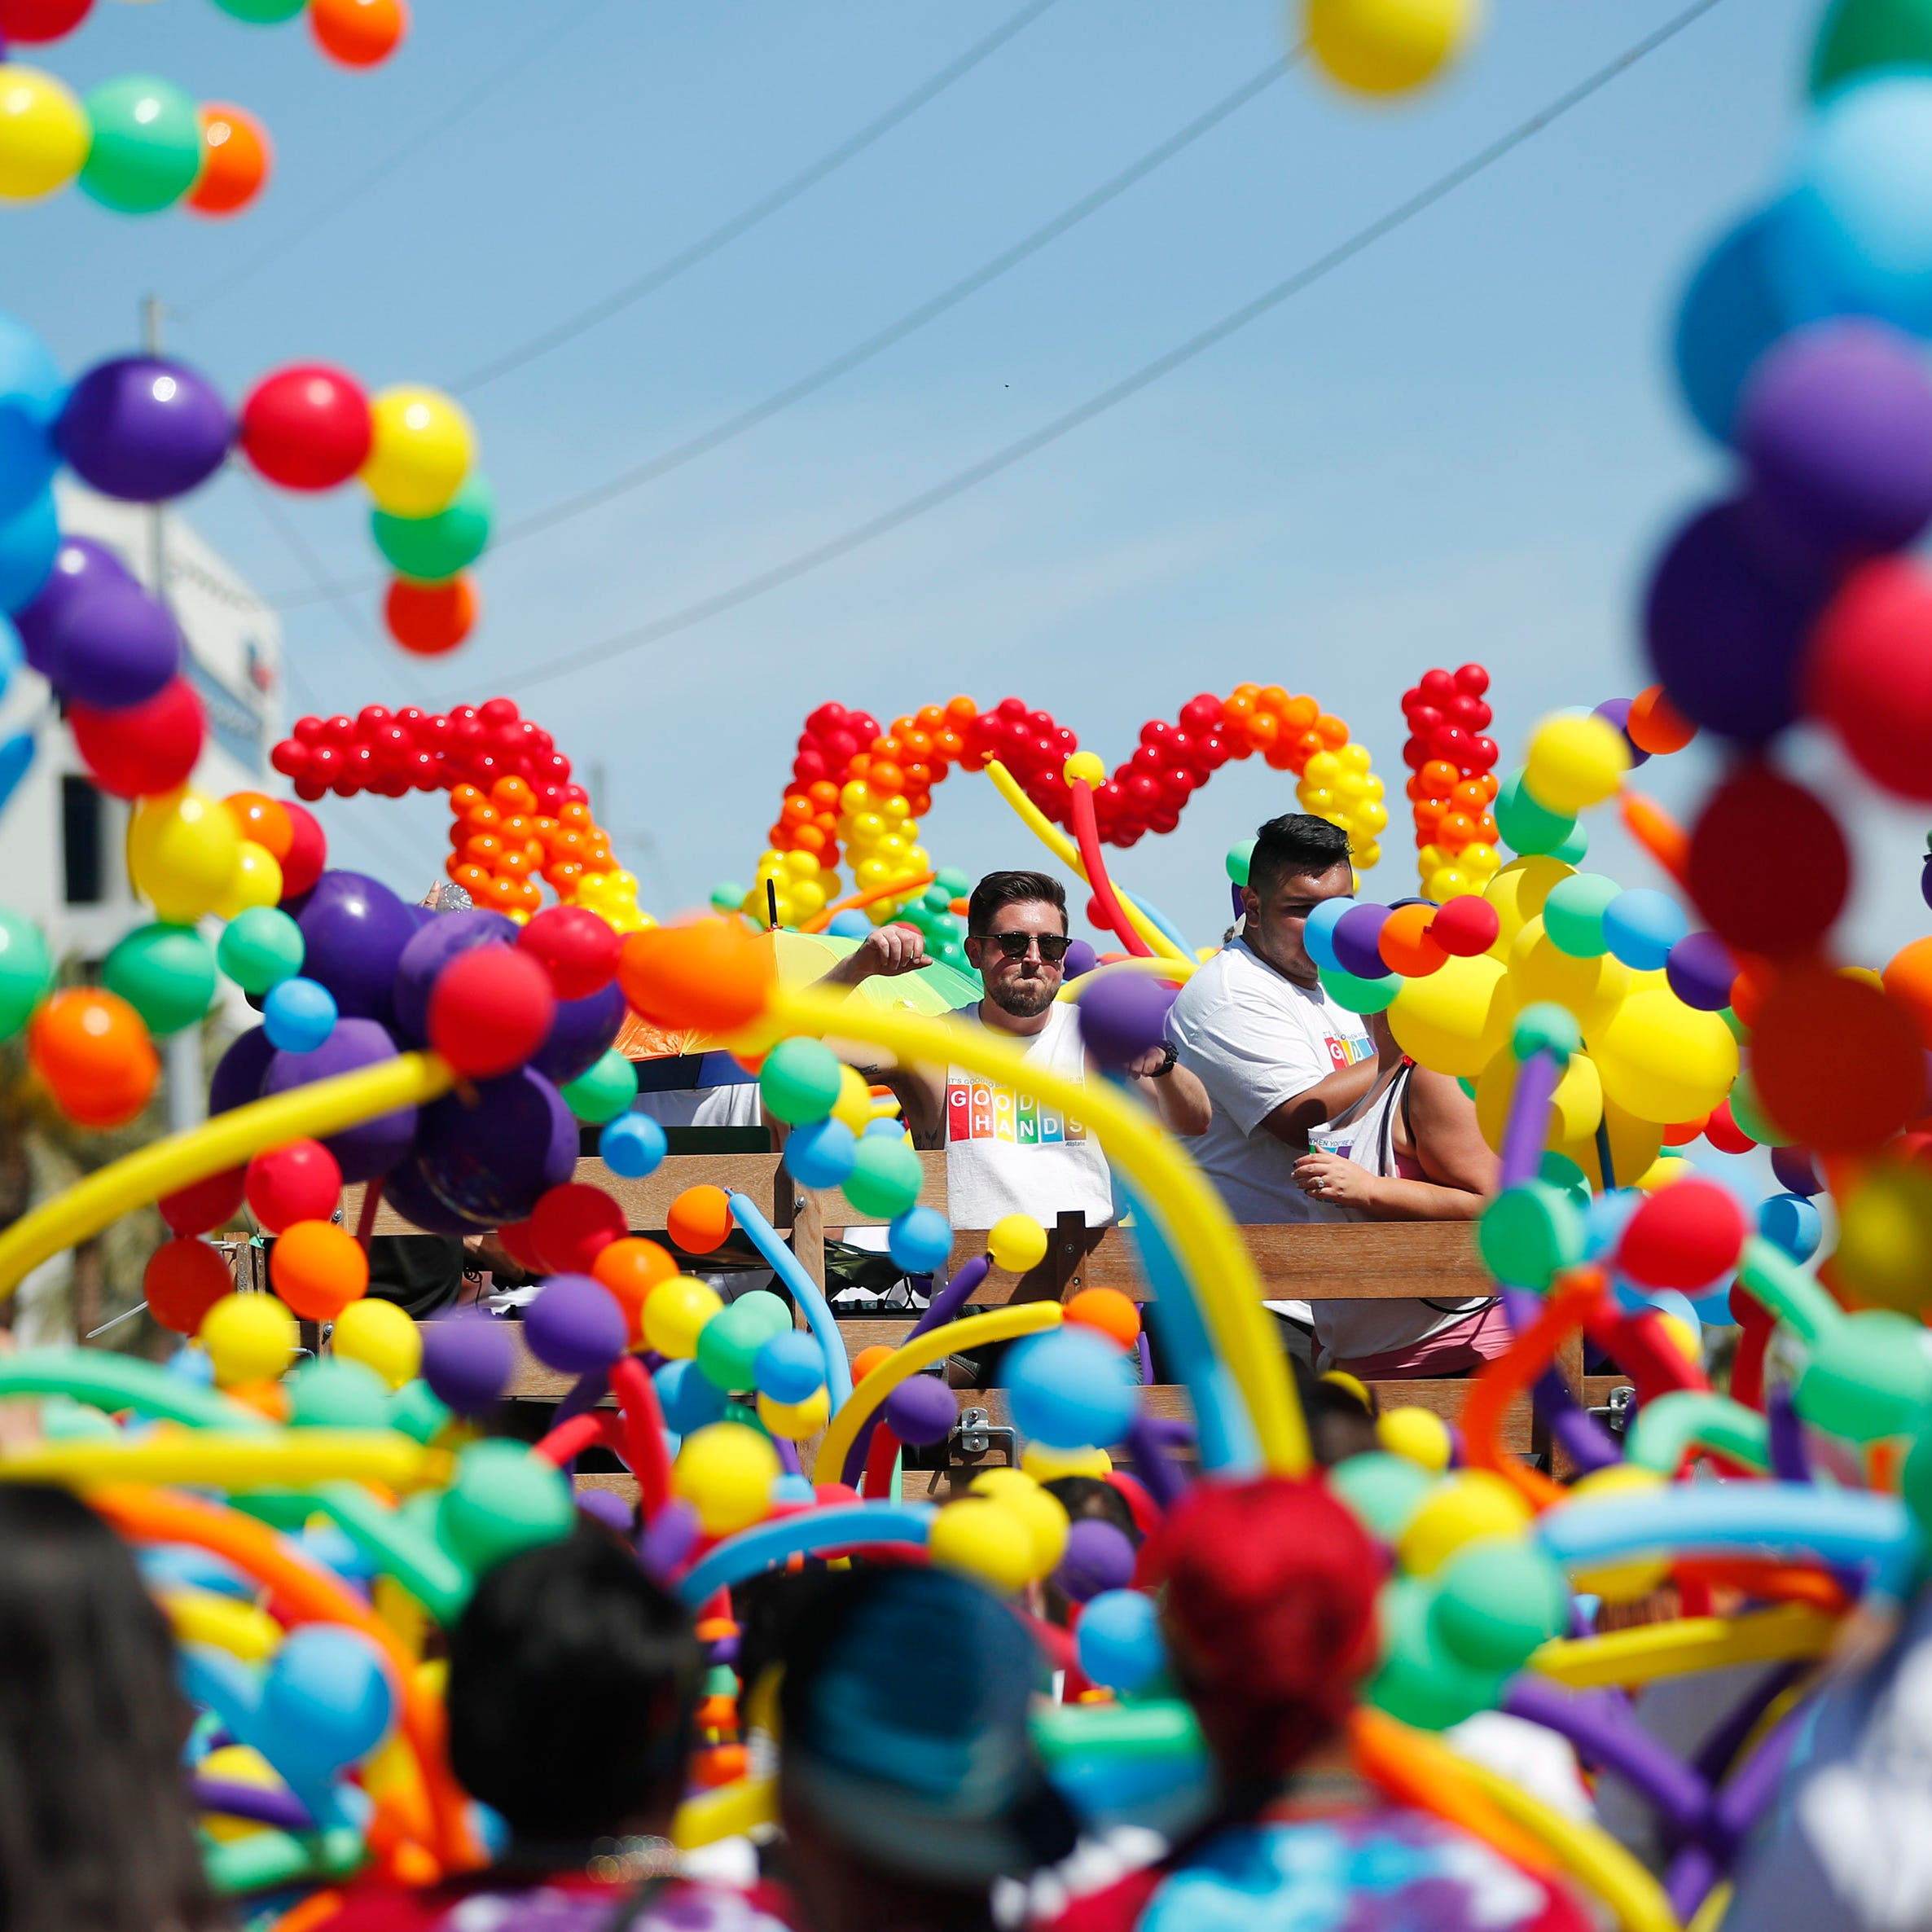 Nearly 20,000 gather to celebrate LGBTQ community at Phoenix Pride Parade